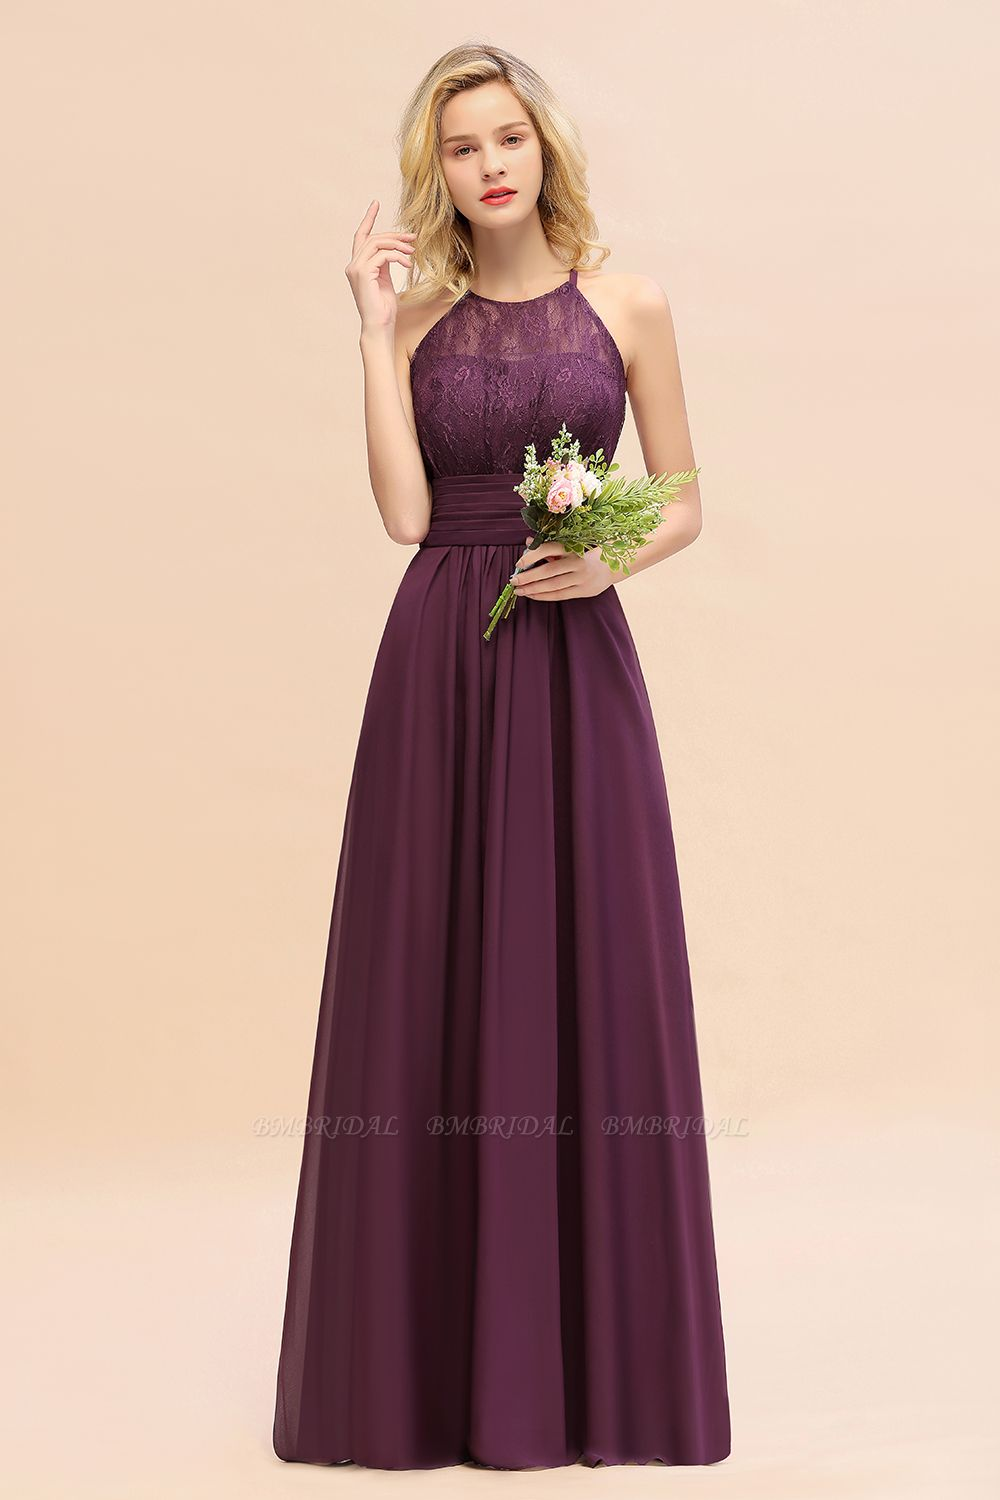 What To Consider When Choosing Bridesmaid Dresses